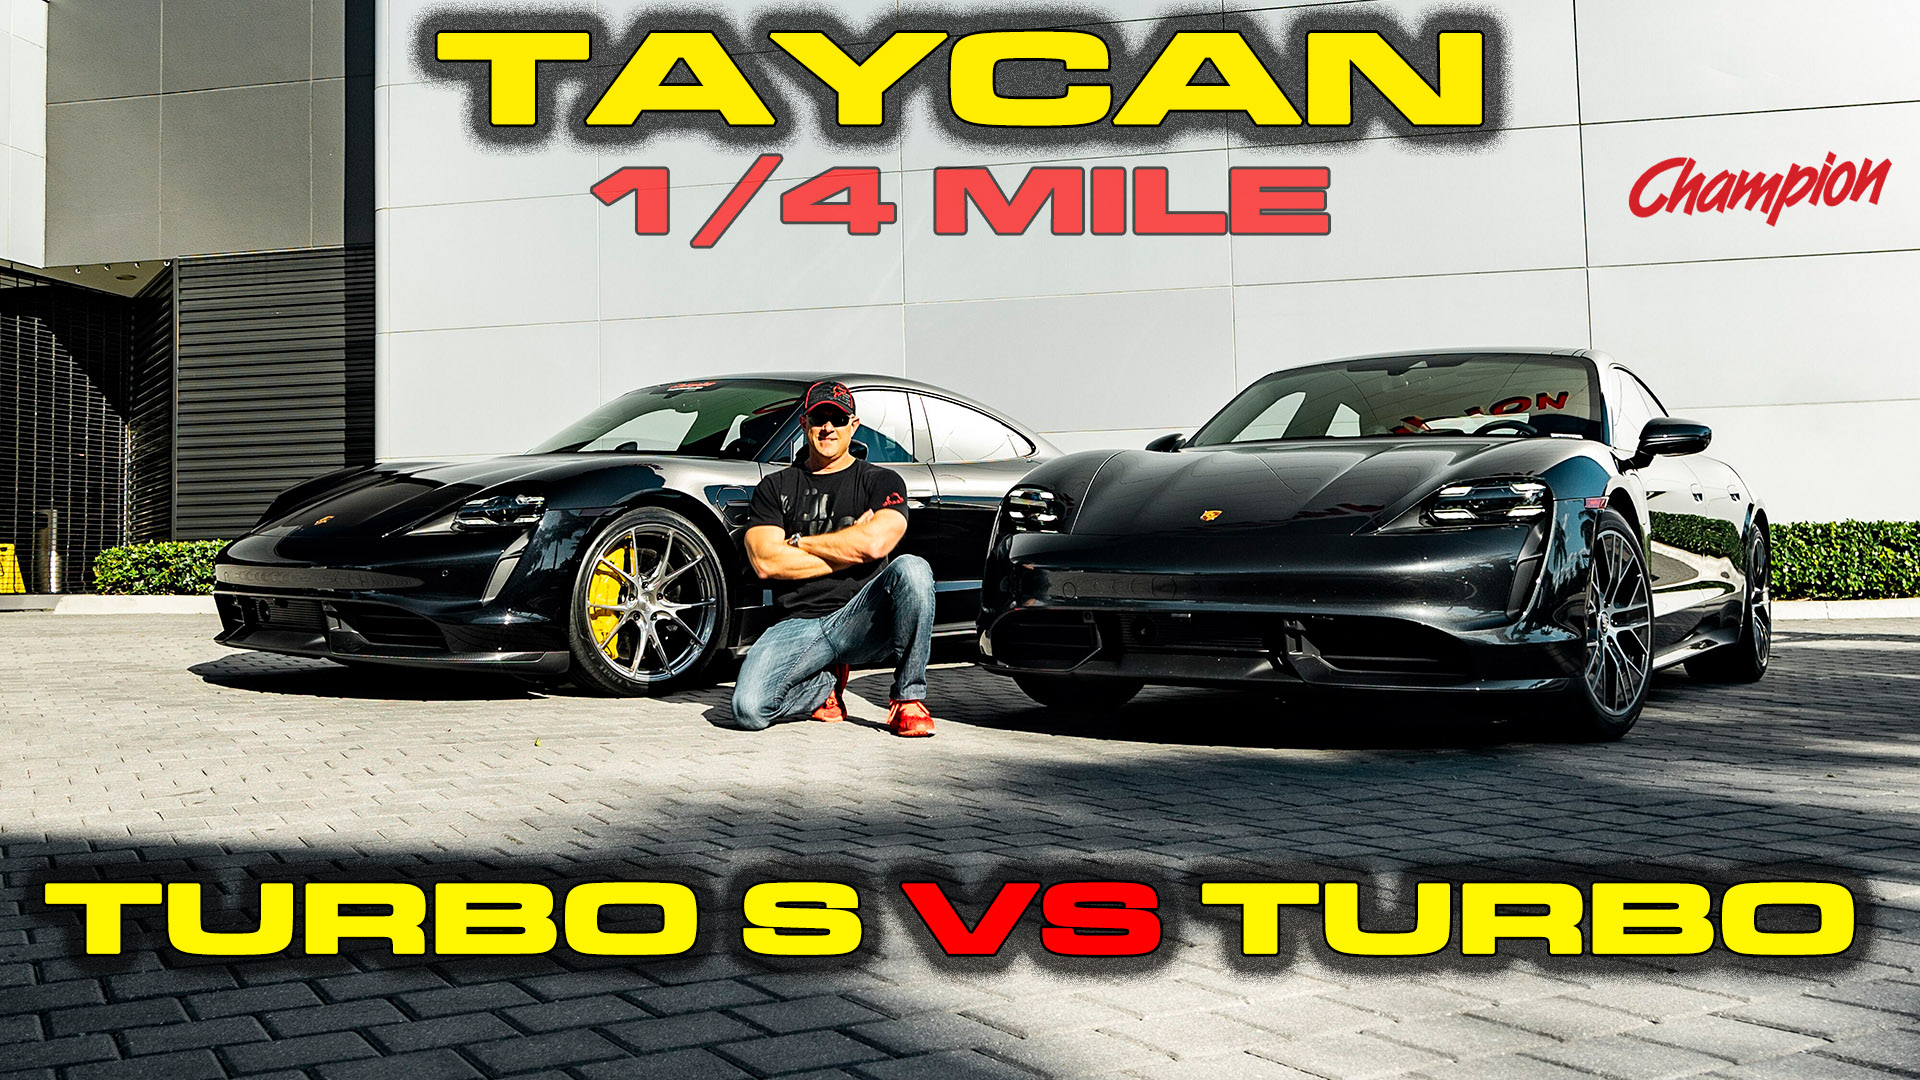 Porsche Taycan Turbo S vs Turbo 1/4 Mile State of Charge Testing